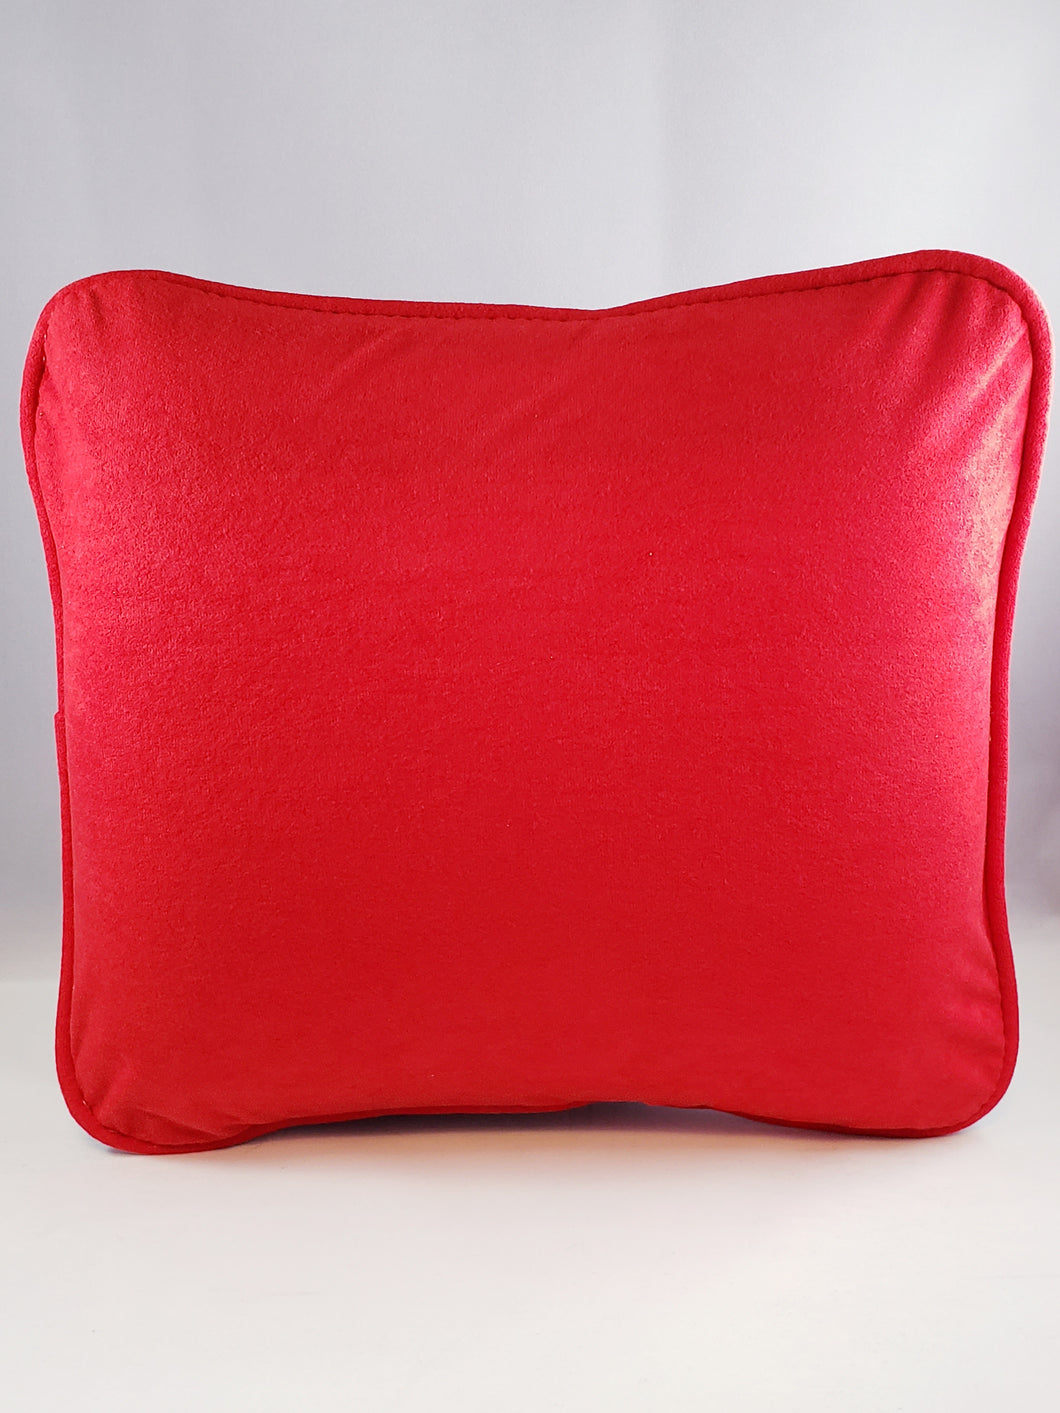 Bright Red Plush Comfee Cushion